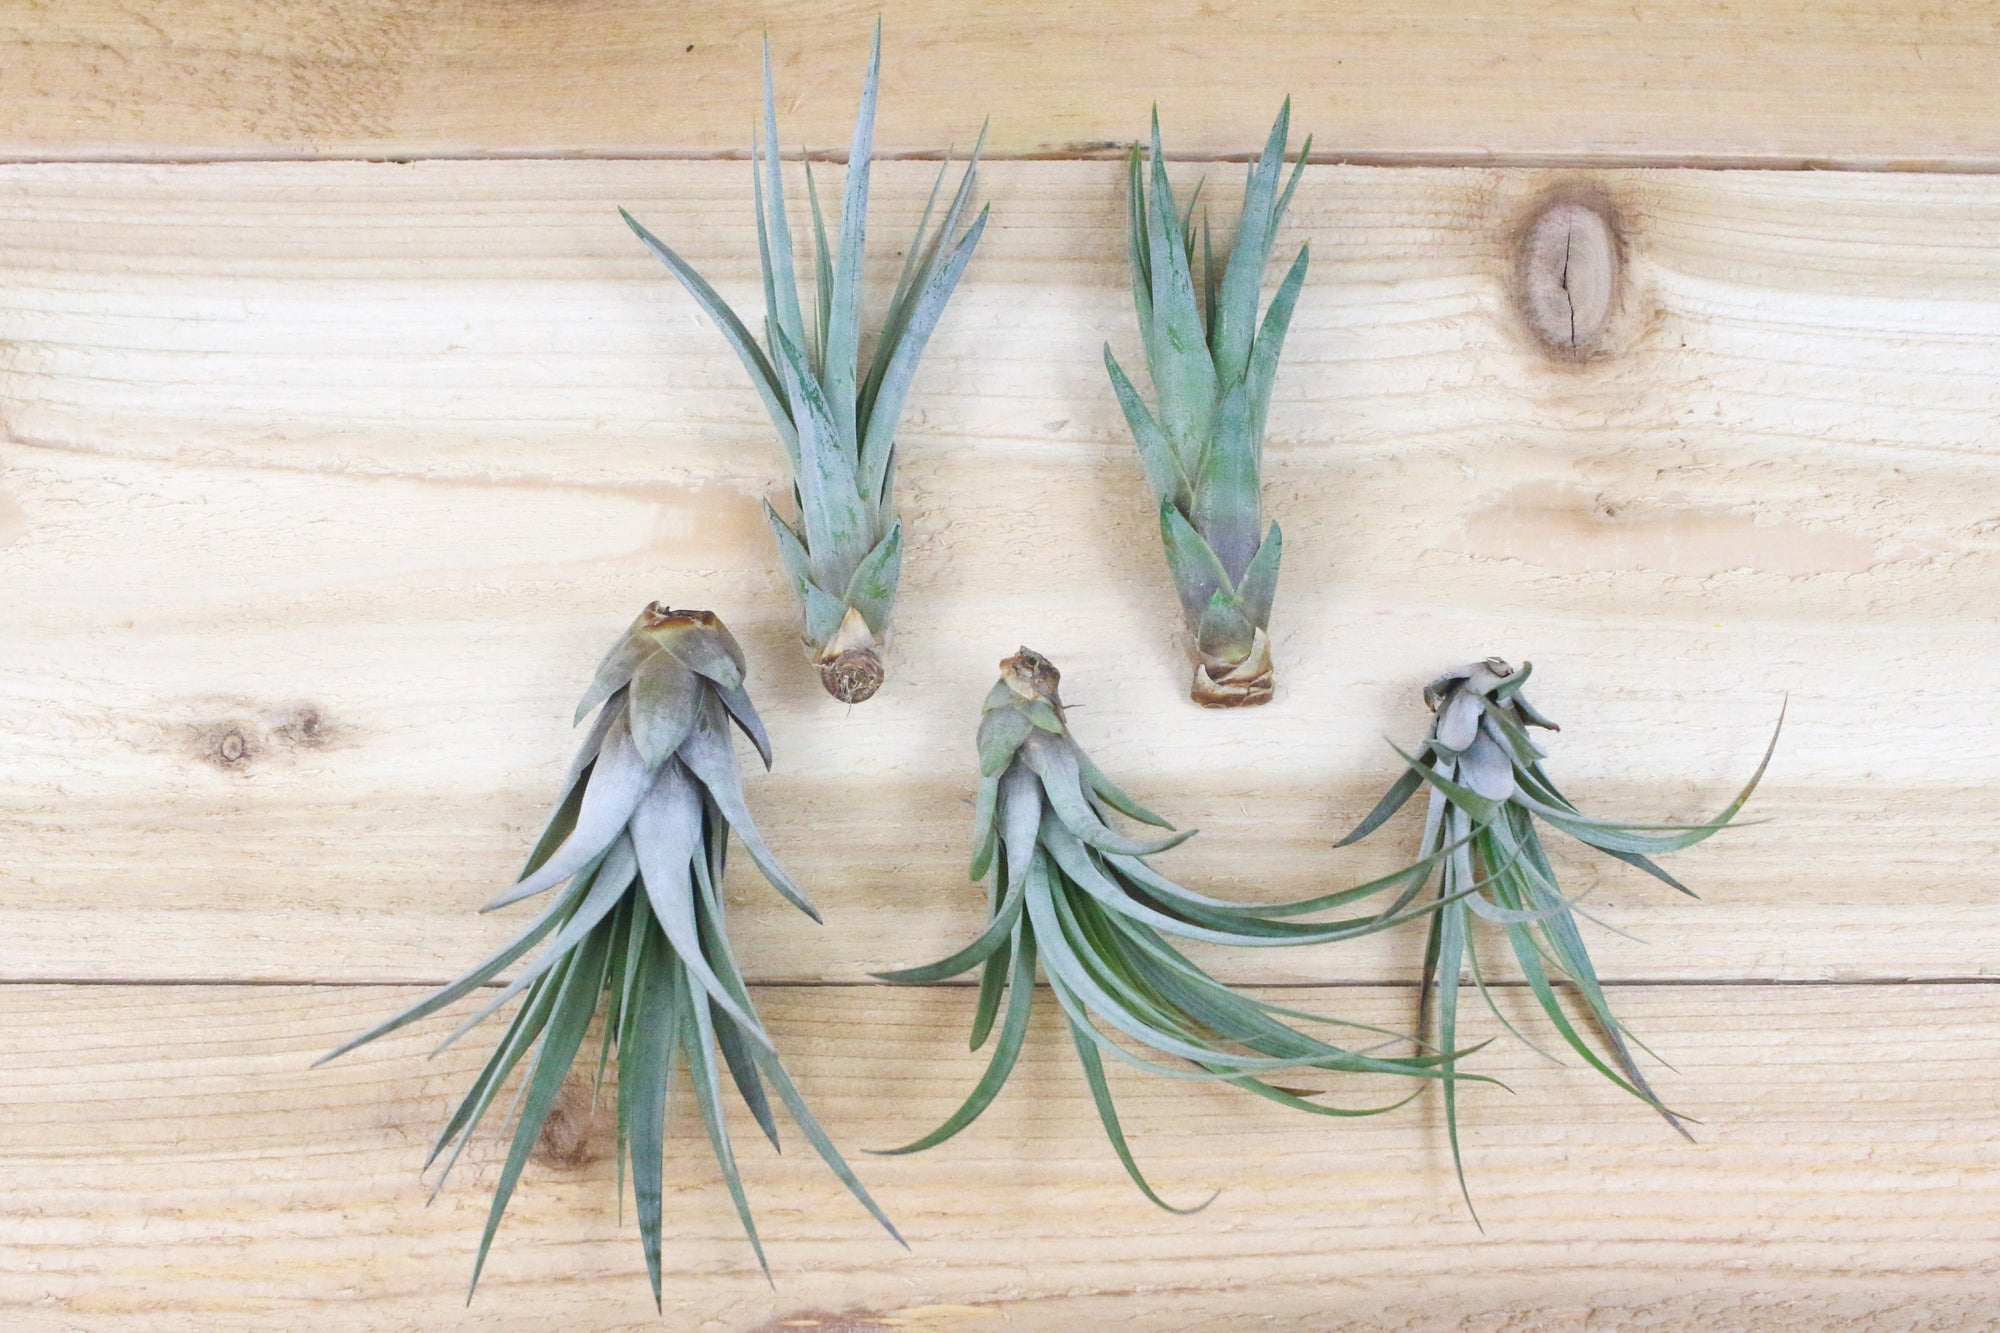 [5 Pack] Large Tillandsia Fasciculata Tricolor 'Golden Torch' Air Plants / 6-9 Inch Plants from AirPlantShop.com